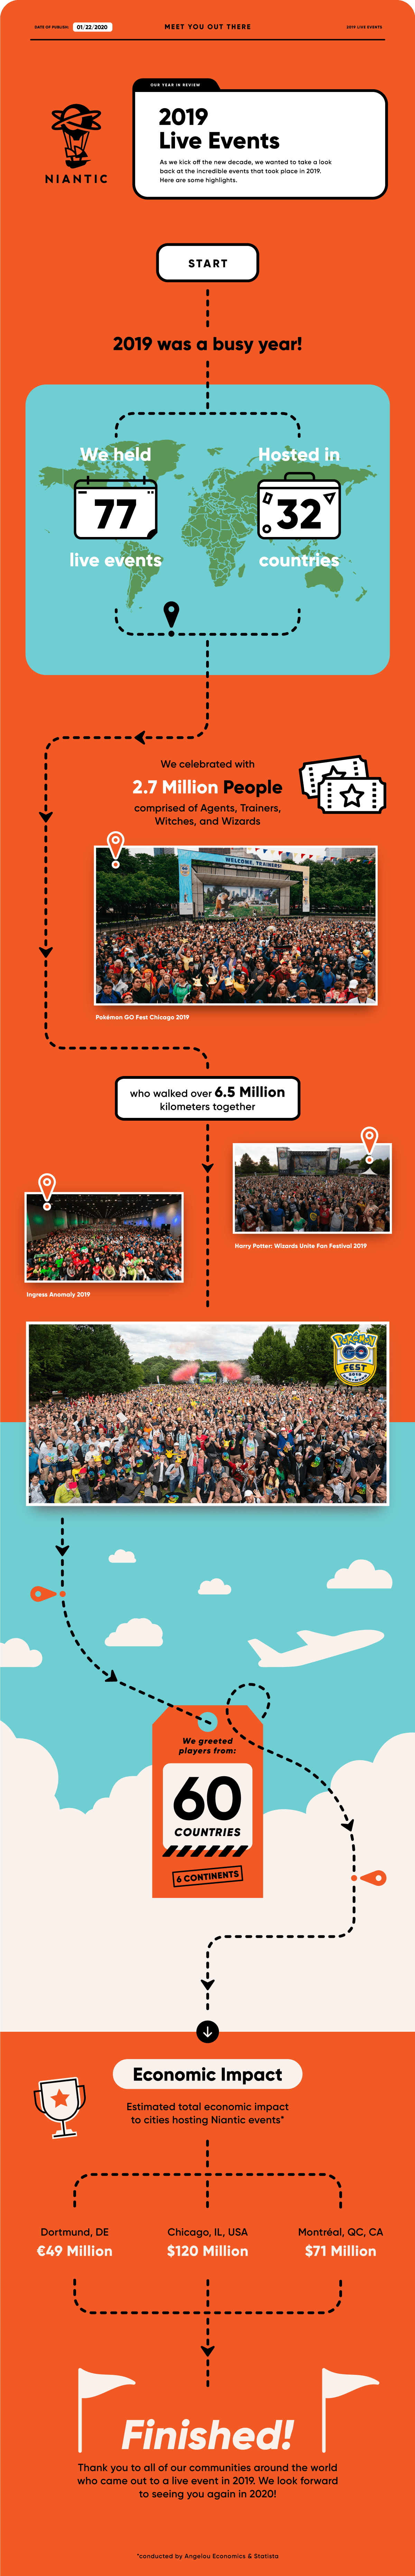 infographie niantic events 2020